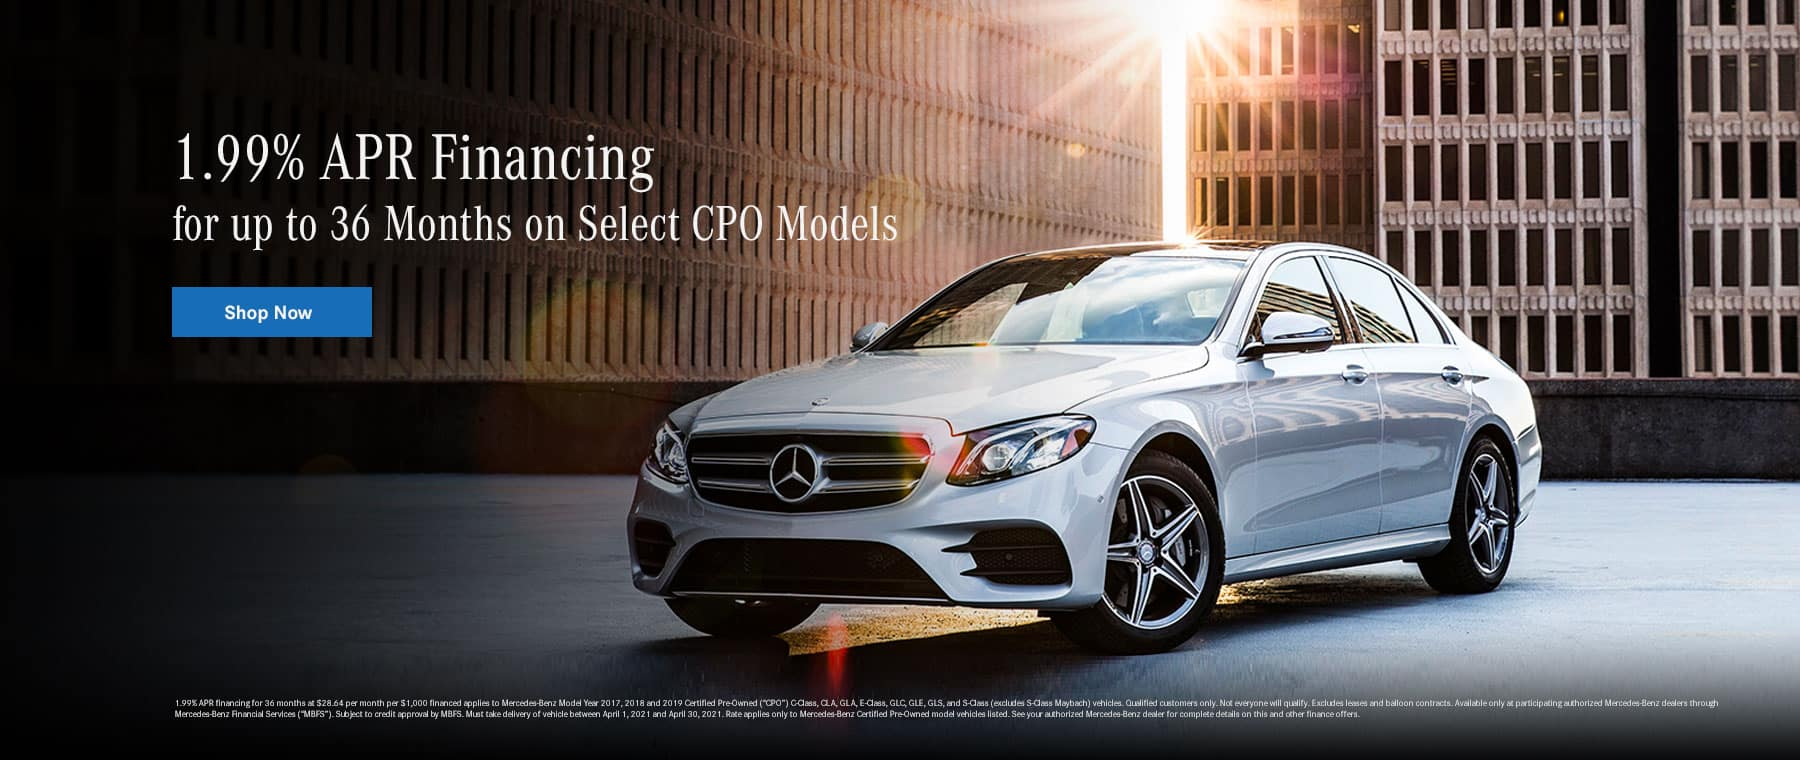 1.99% APR Financing for up to 36 Months on Select CPO Models